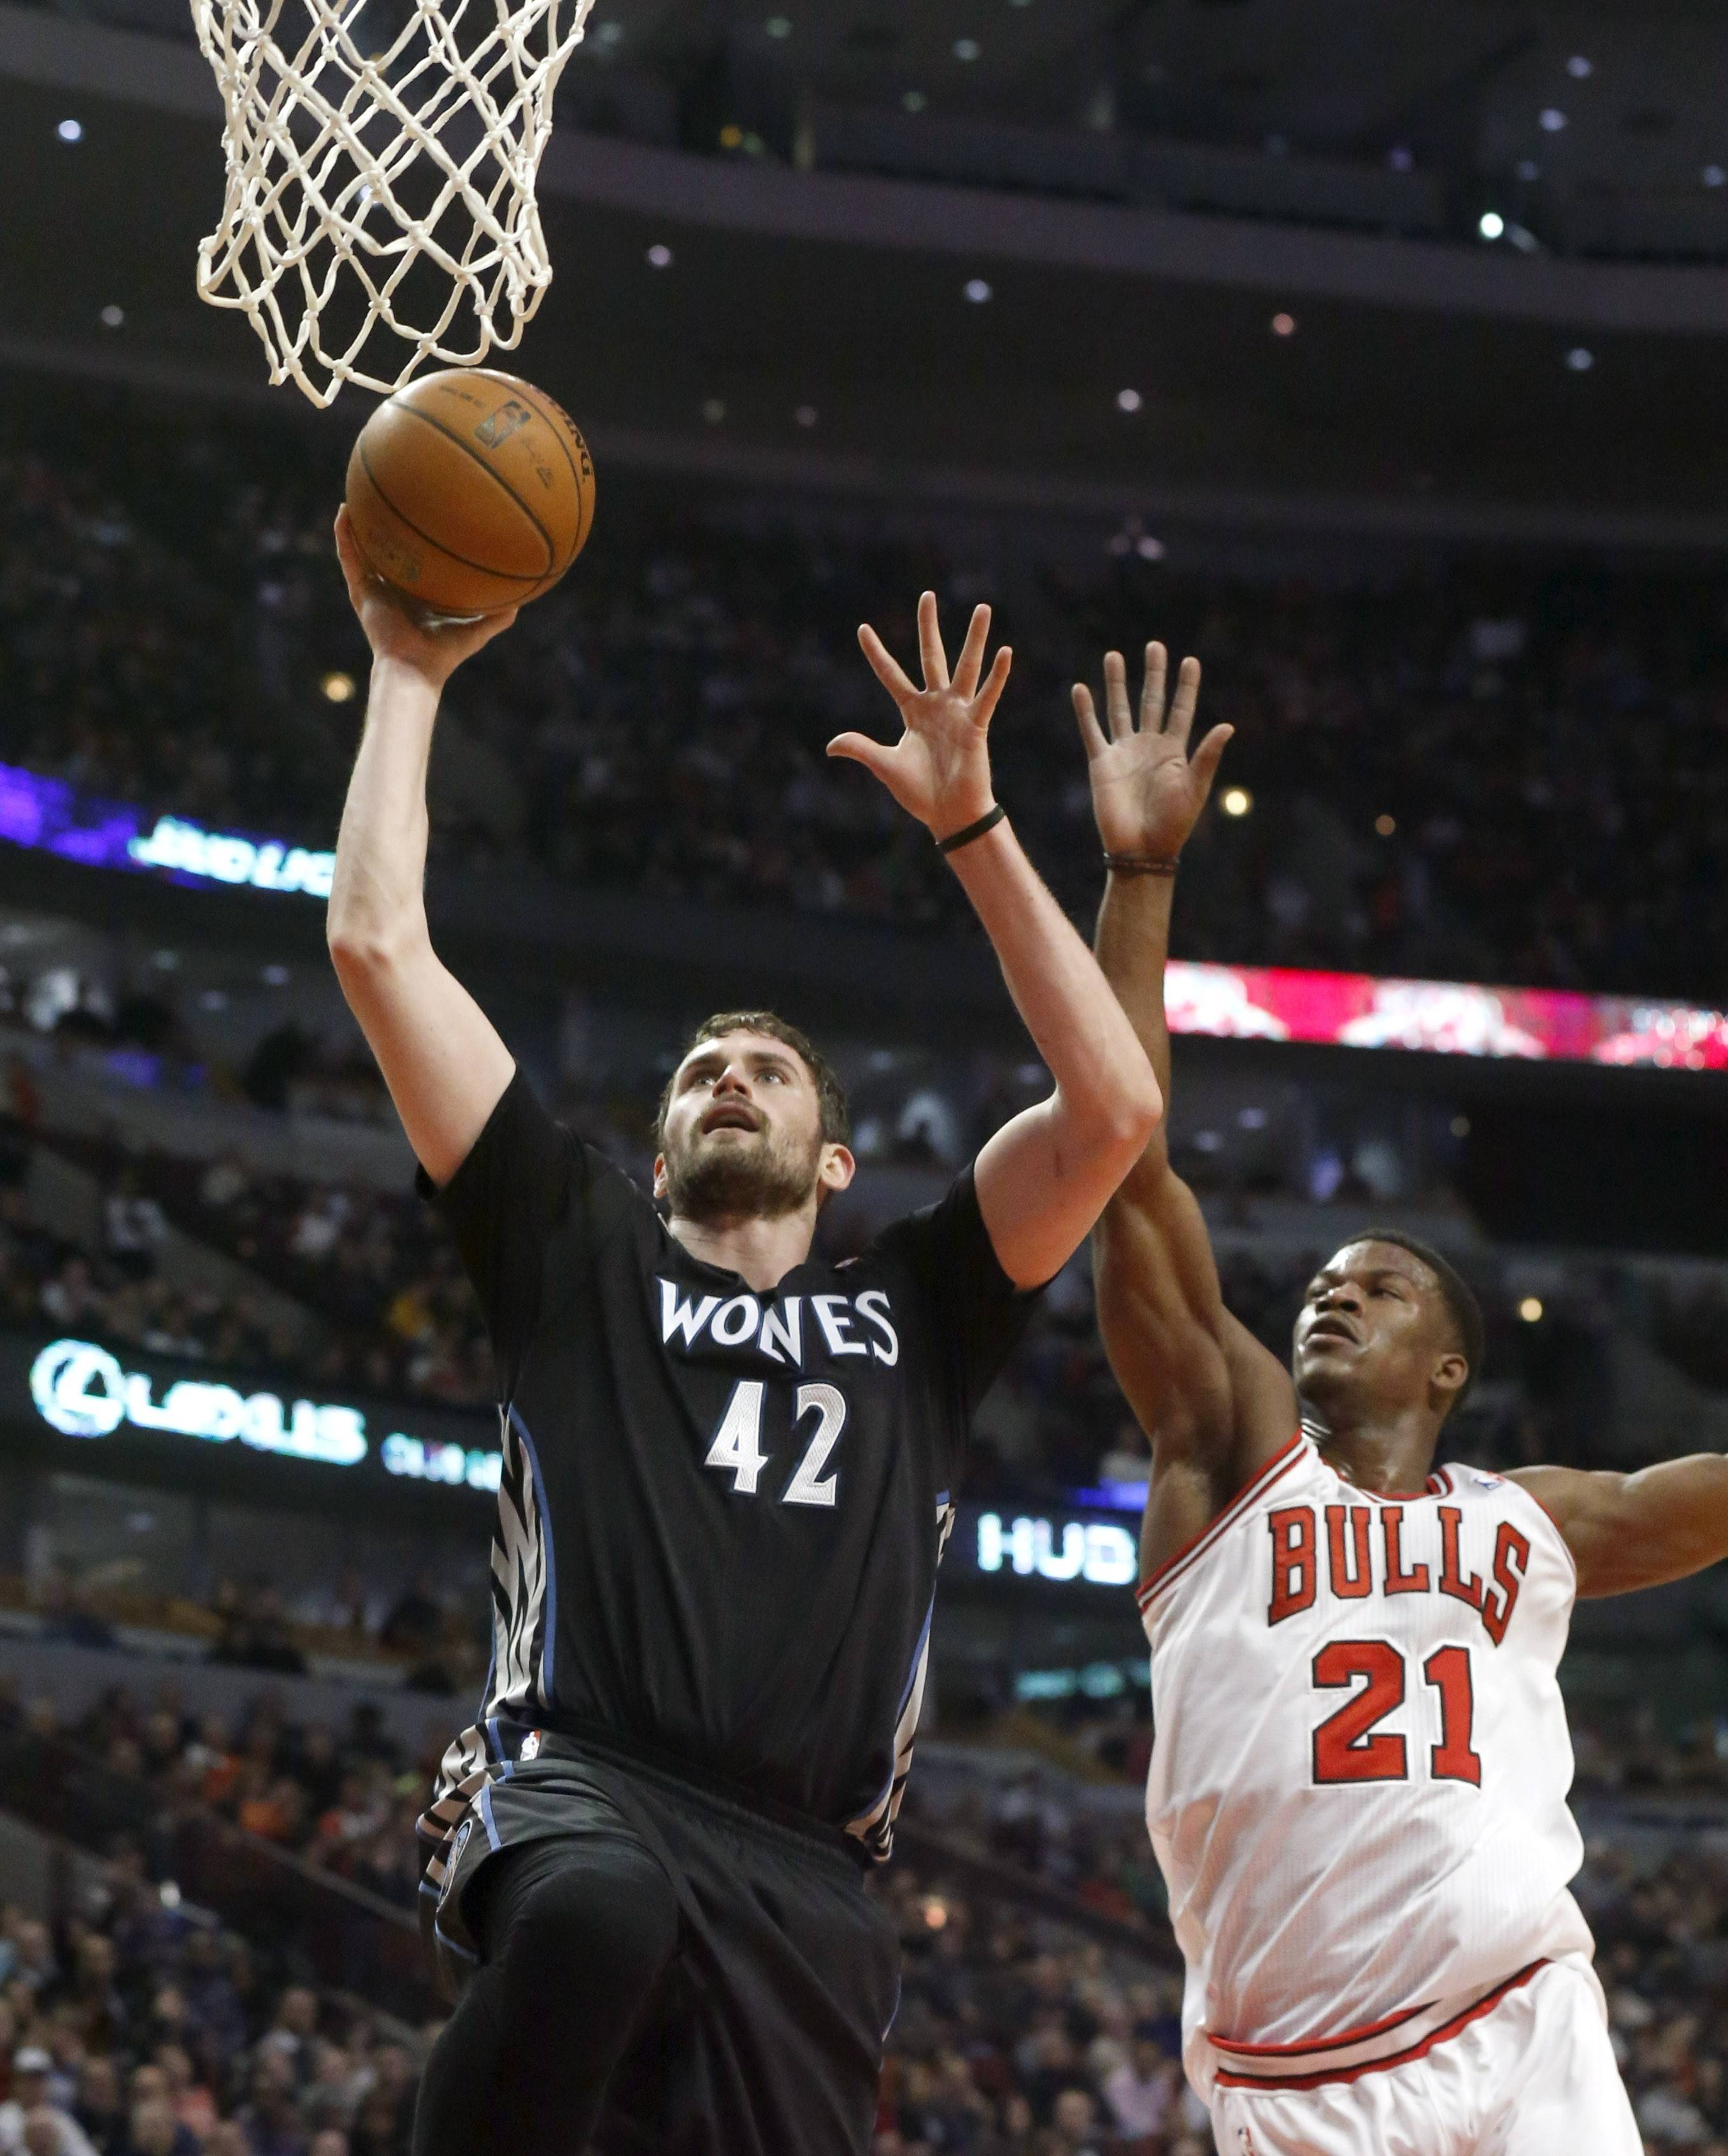 Timberwolves forward Kevin Love, scoring past the Bulls' Jimmy Butler, continues to be involved in trade talks.